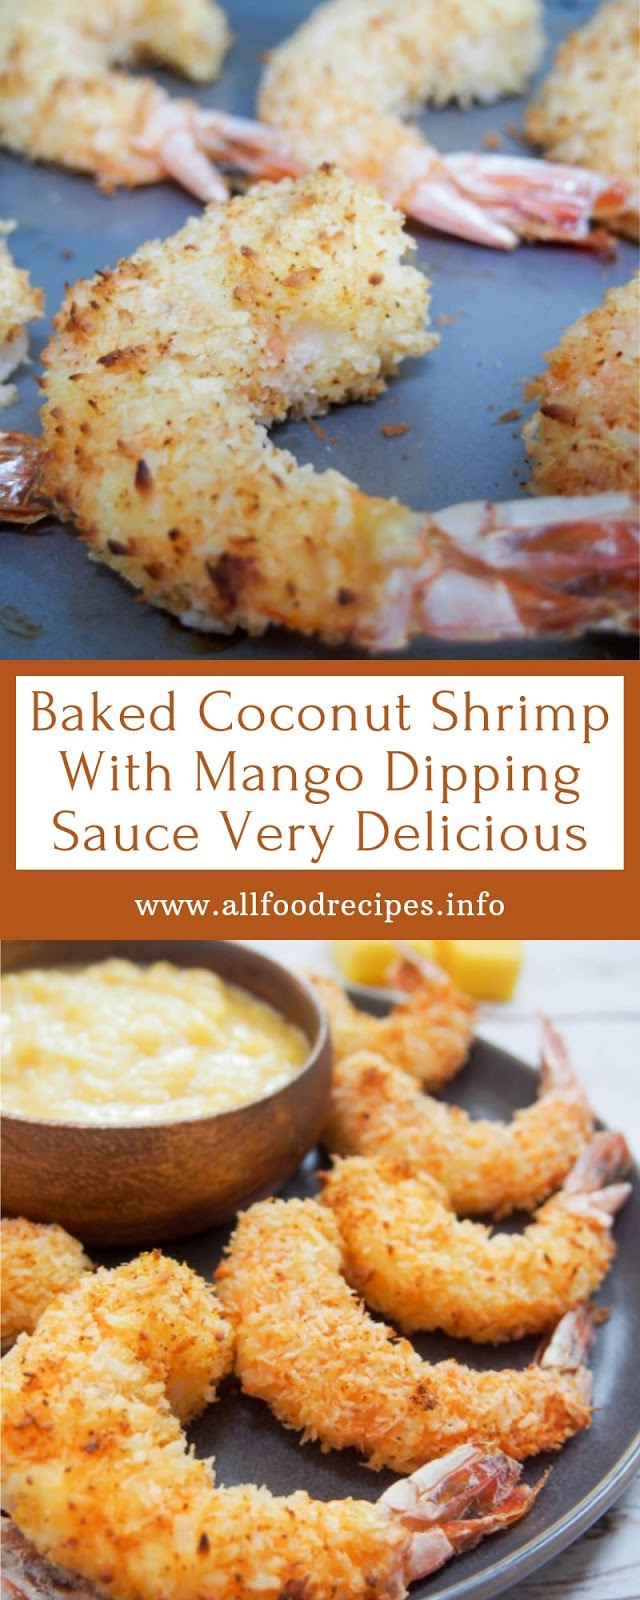 Baked Coconut Shrimp With Mango Dipping Sauce Very Delicious